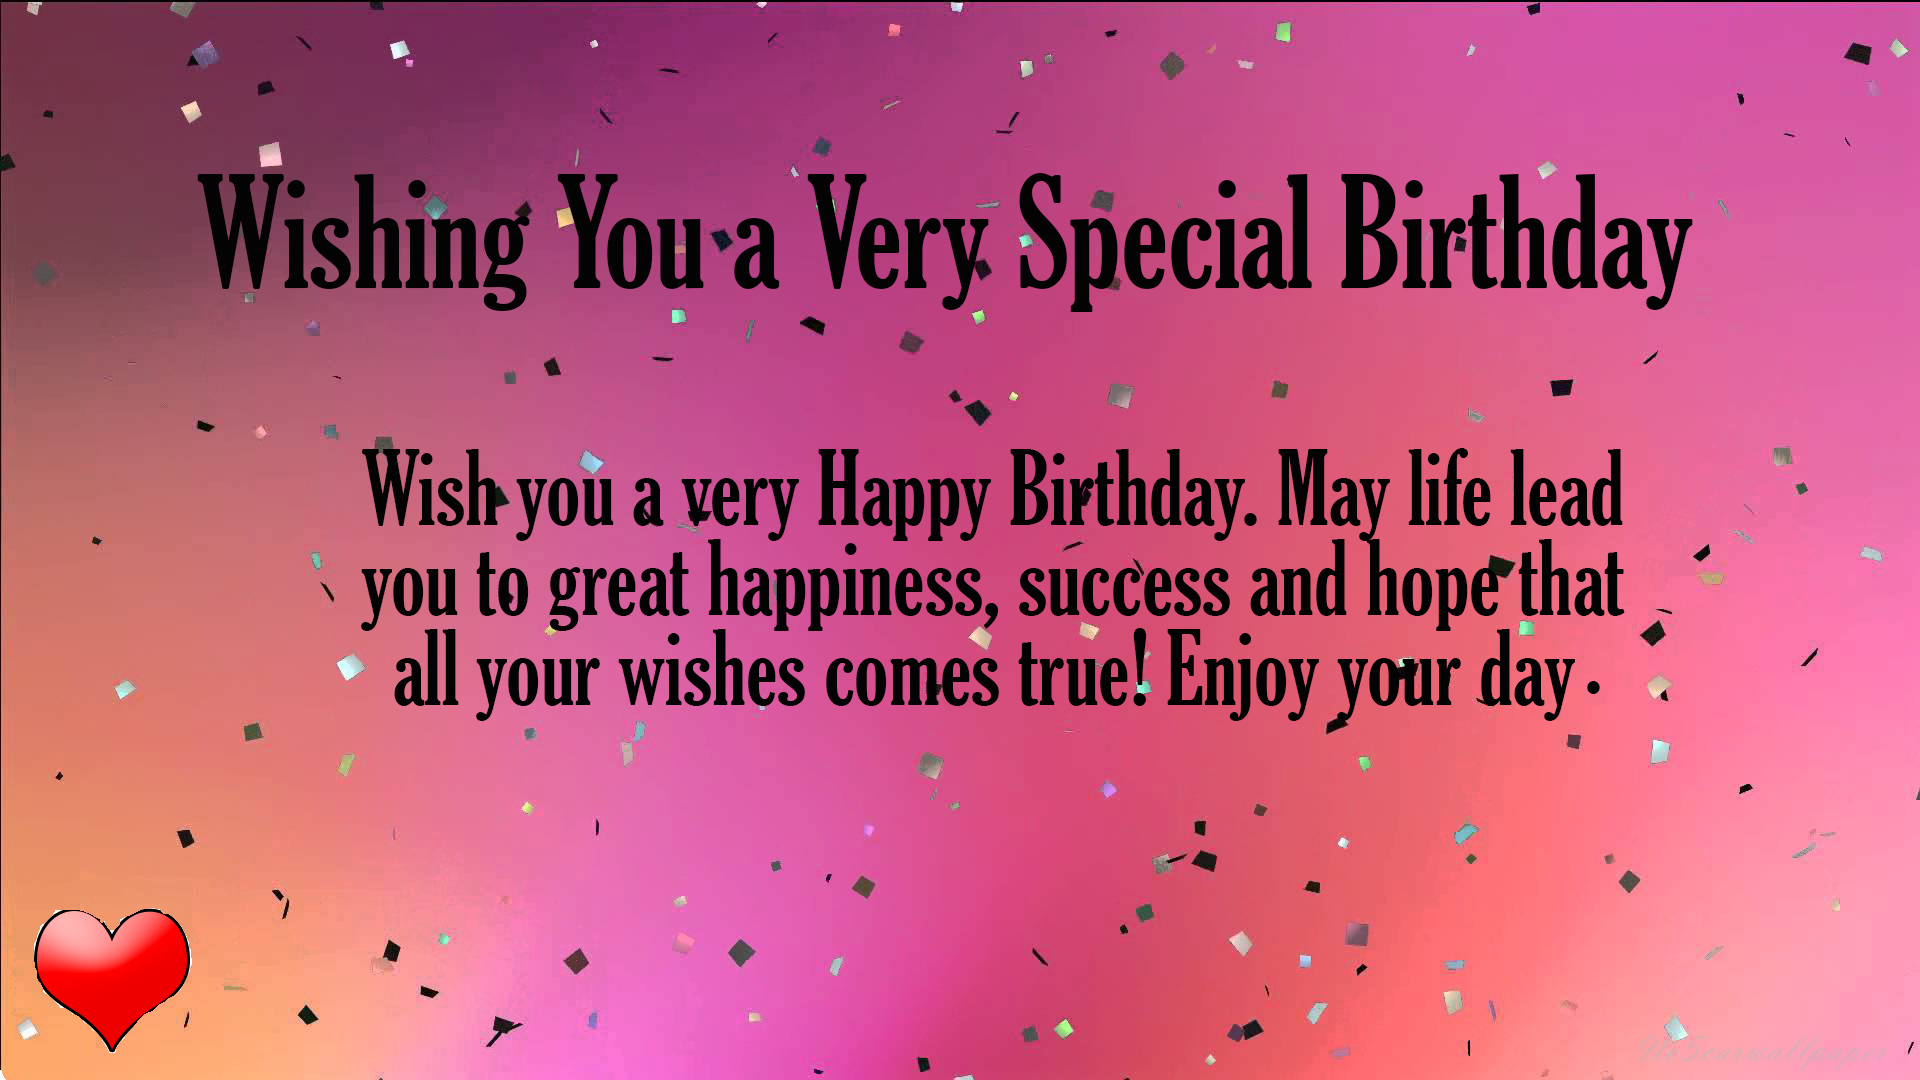 Happy Birthday 2018 Quotes Birthday Wish Whatsapp Status